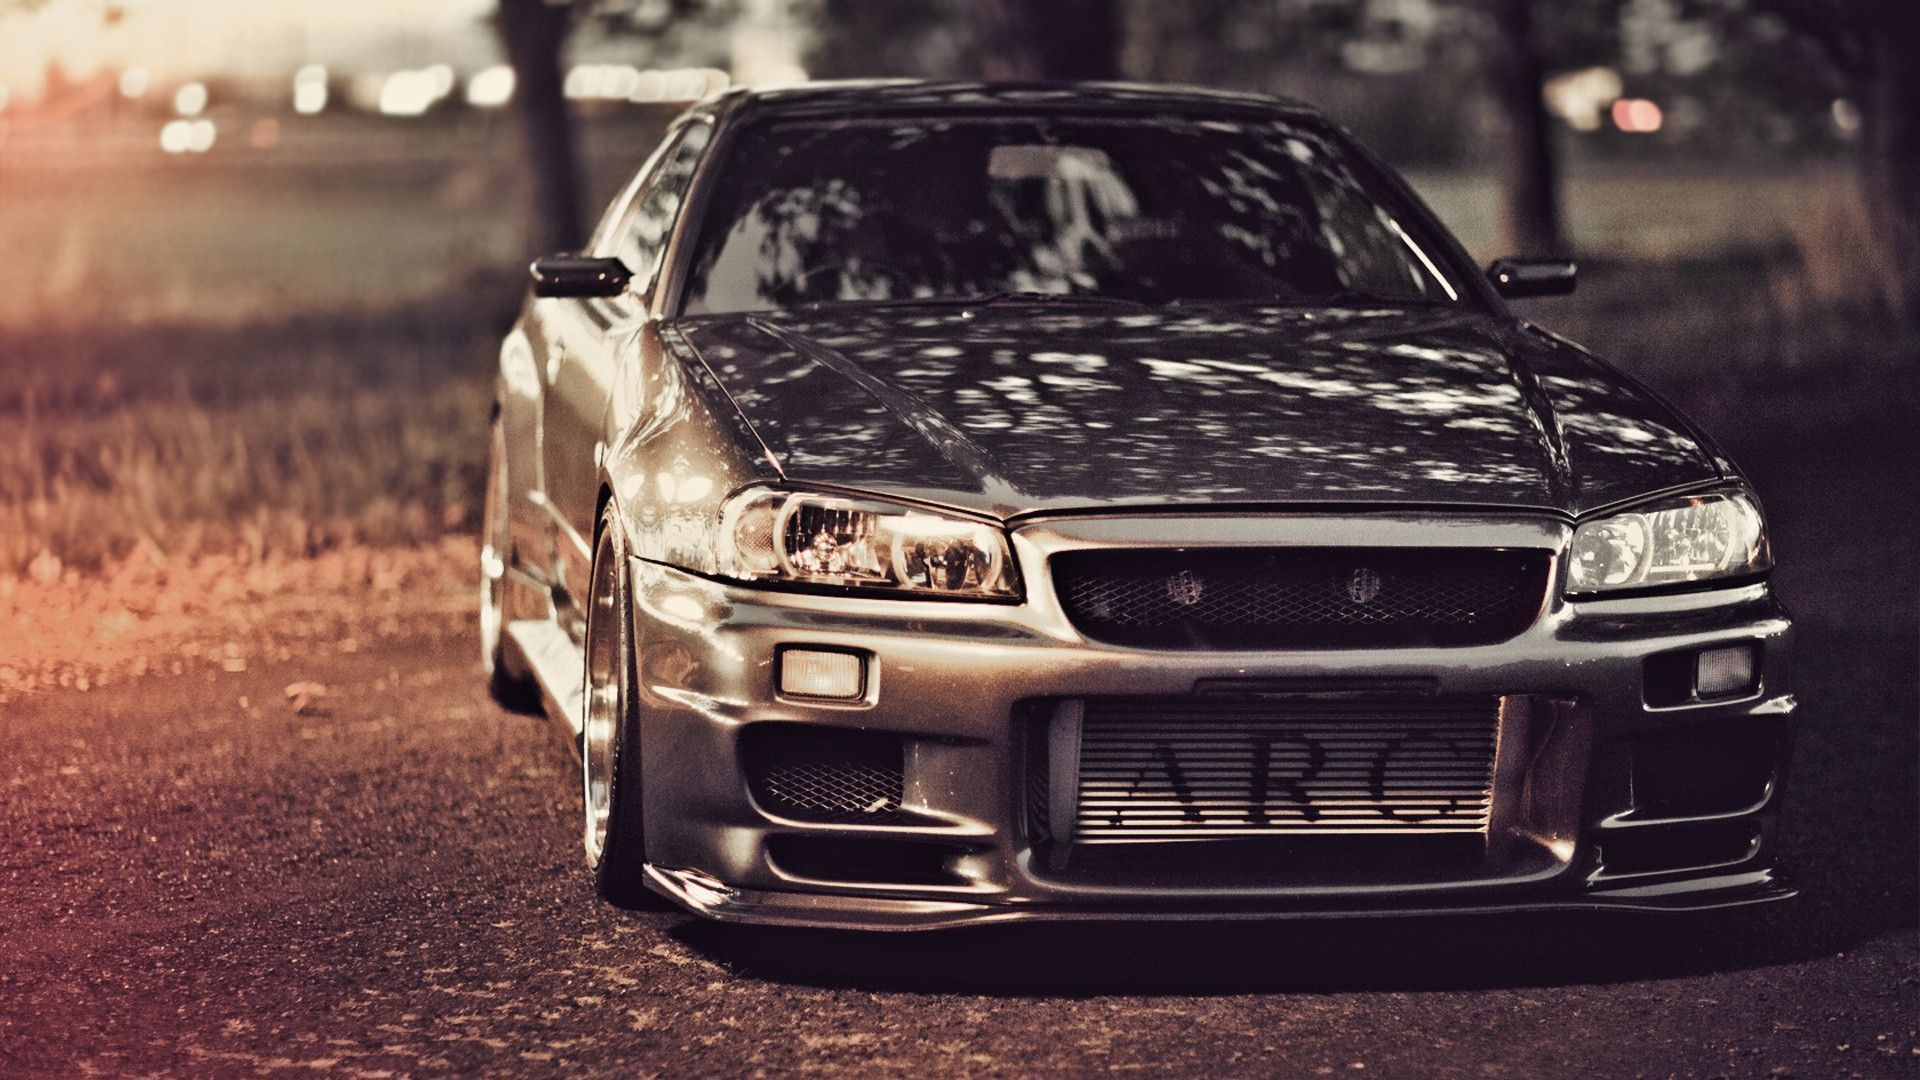 1920x1080 Wallpapers nissan skyline, gt-r, r34, nissan, tuning, road,